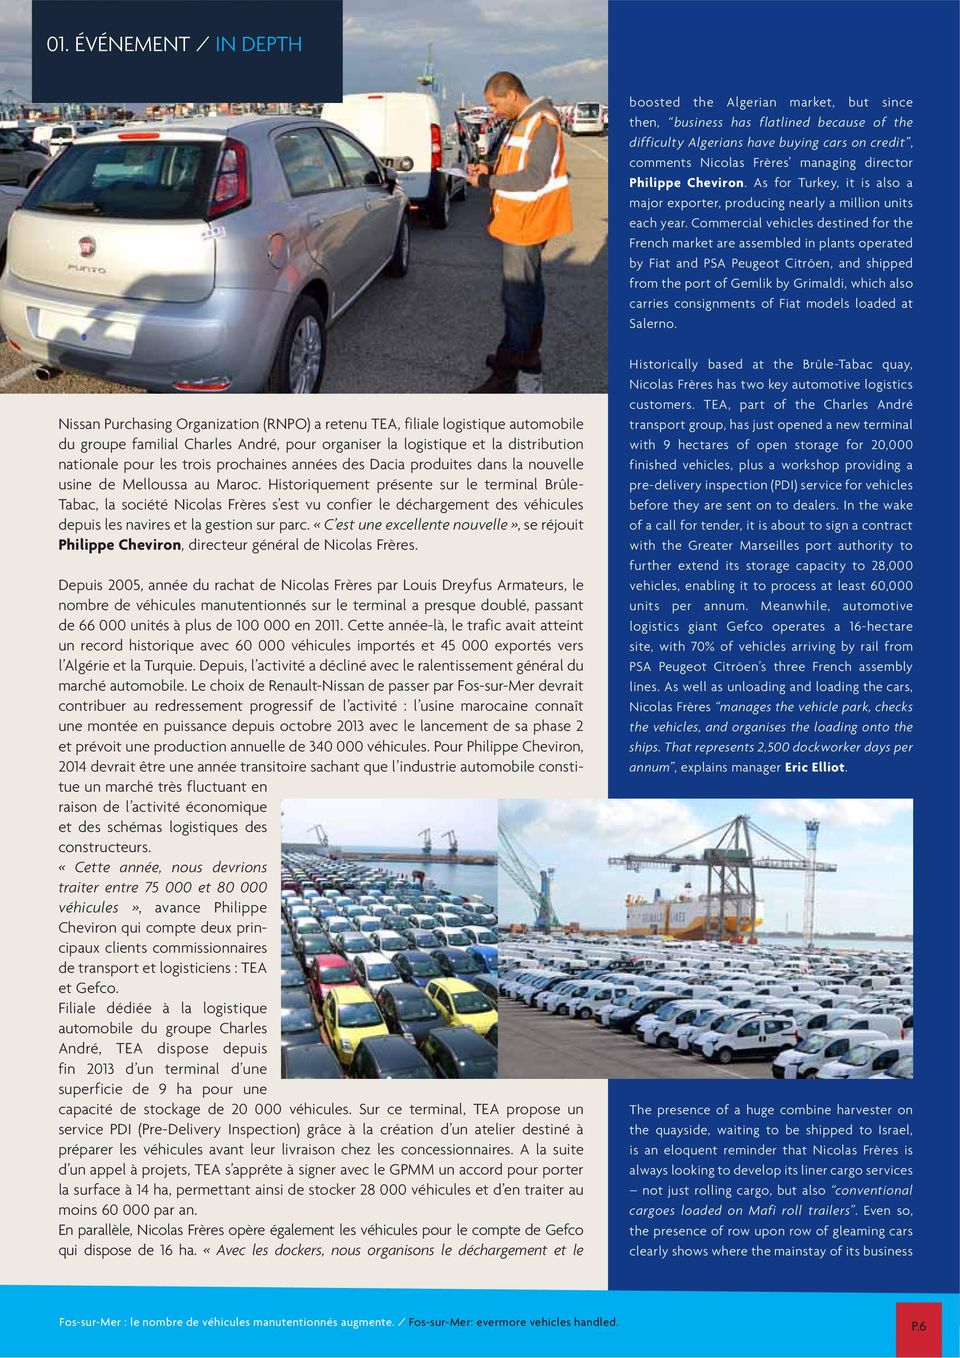 Commercial vehicles destined for the French market are assembled in plants operated by Fiat and PSA Peugeot Citröen, and shipped from the port of Gemlik by Grimaldi, which also carries consignments